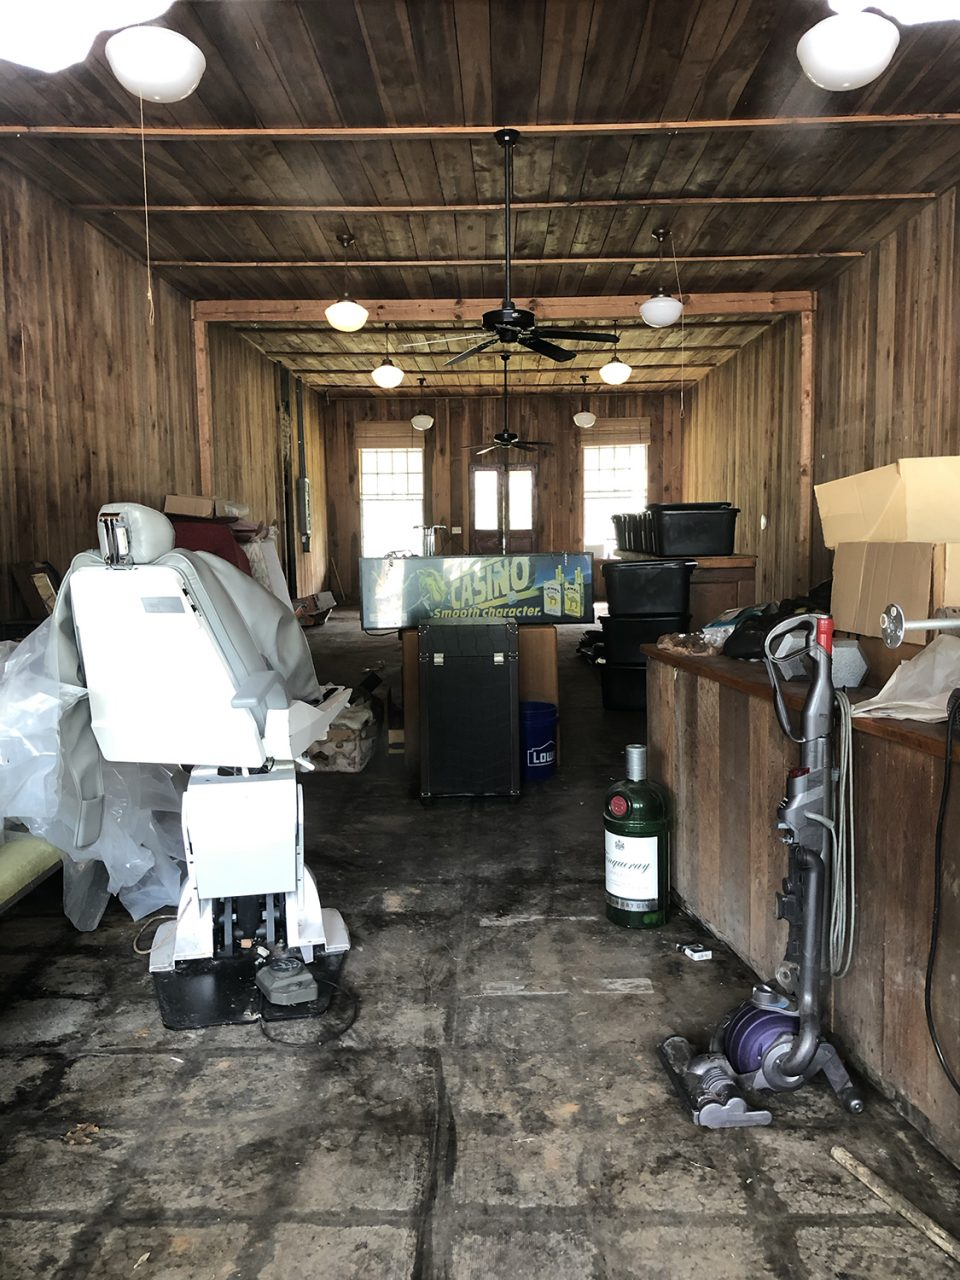 Another building on Main Street serves as a historically significant storage space, holding a variety of random items, including a dental chair.